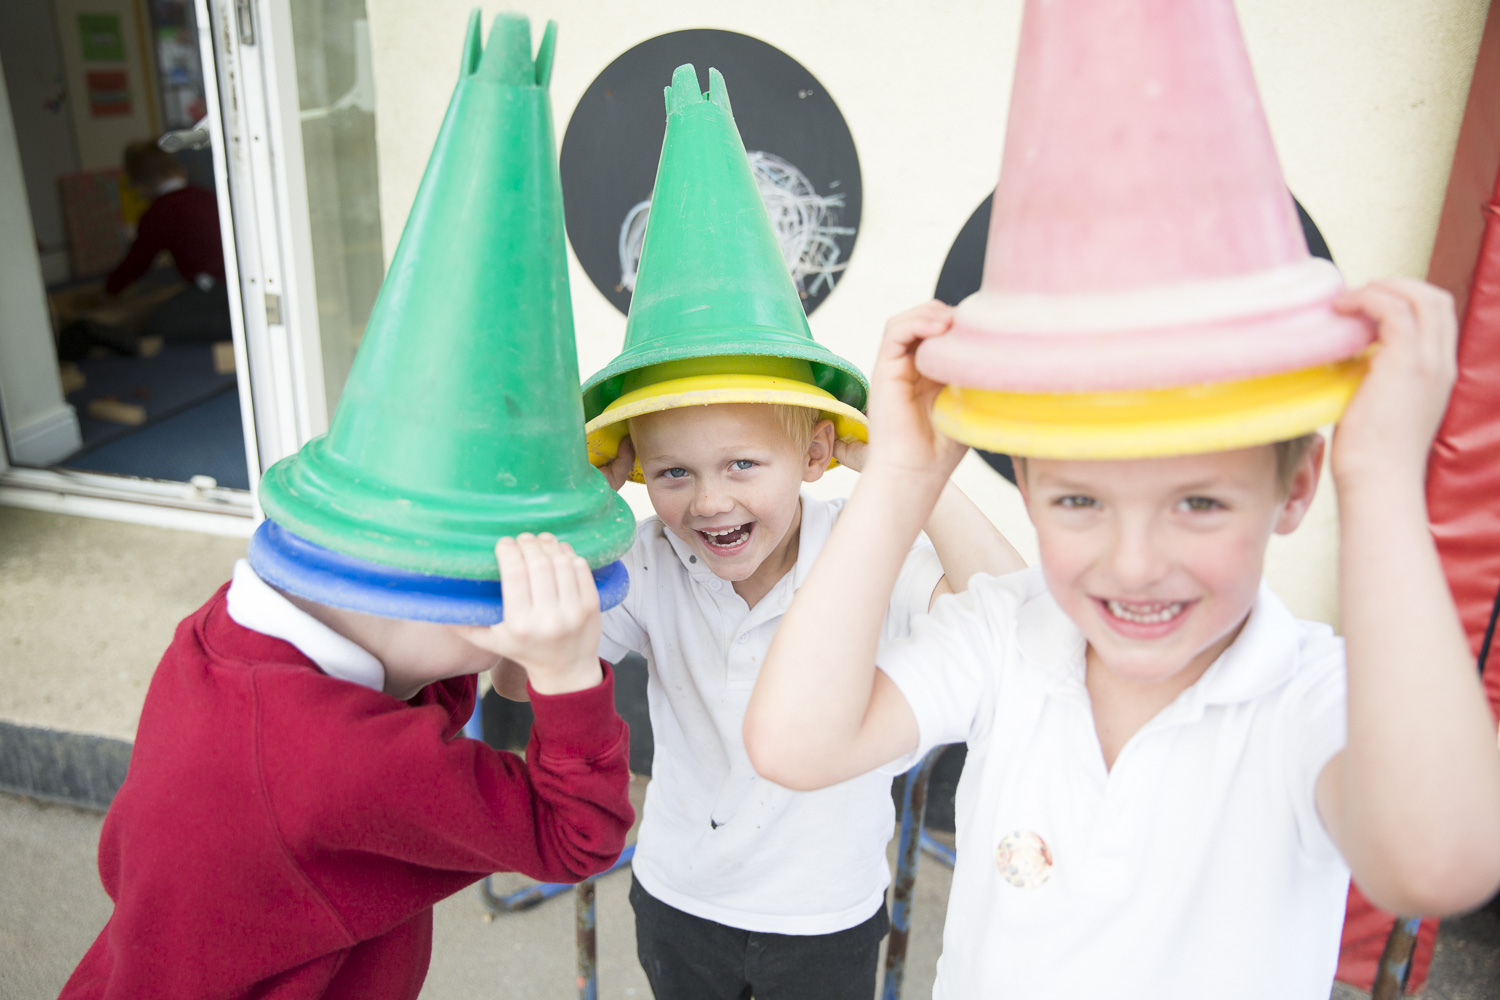 Children wearing Cones as Hats